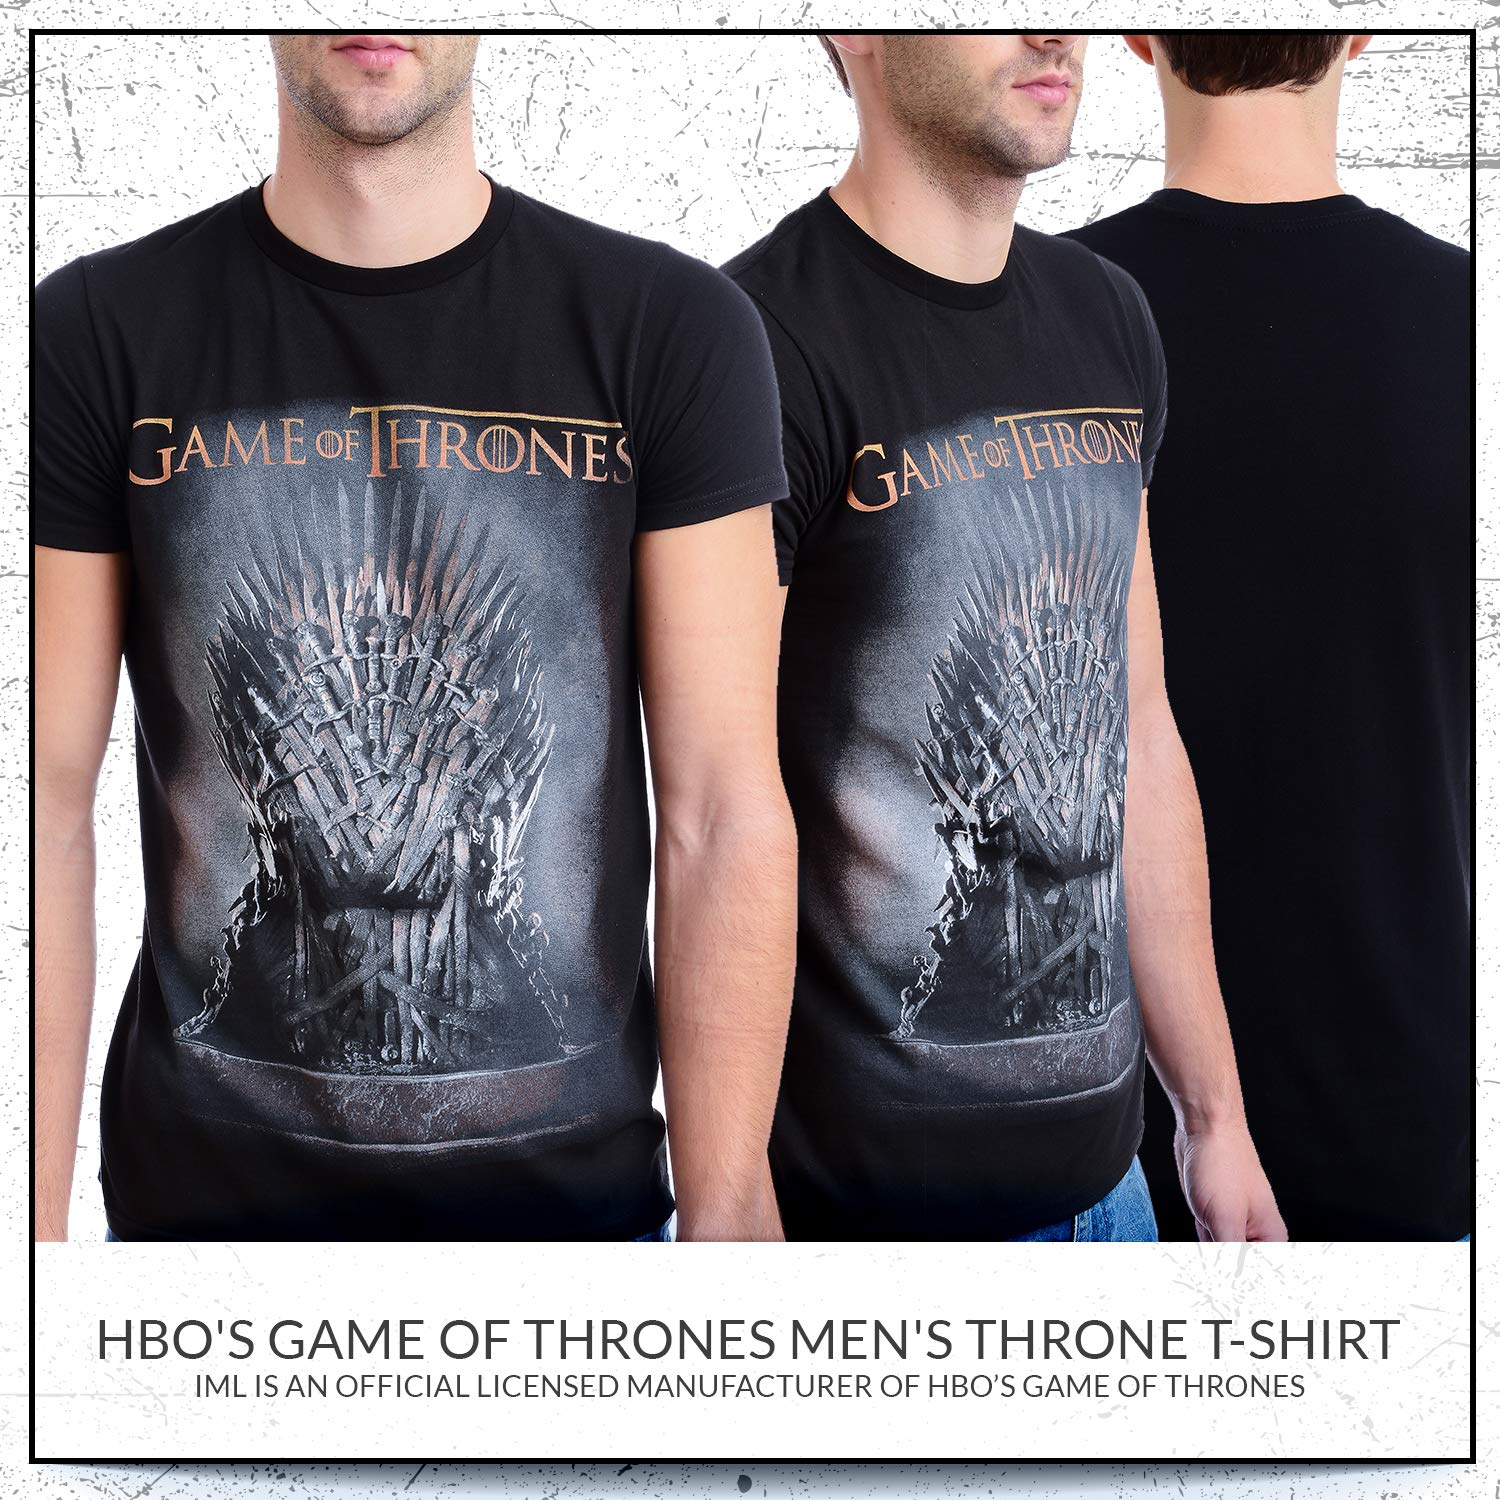 d56ee12a Amazon.com: HBO'S Game of Thrones Men's Throne T-Shirt: Clothing